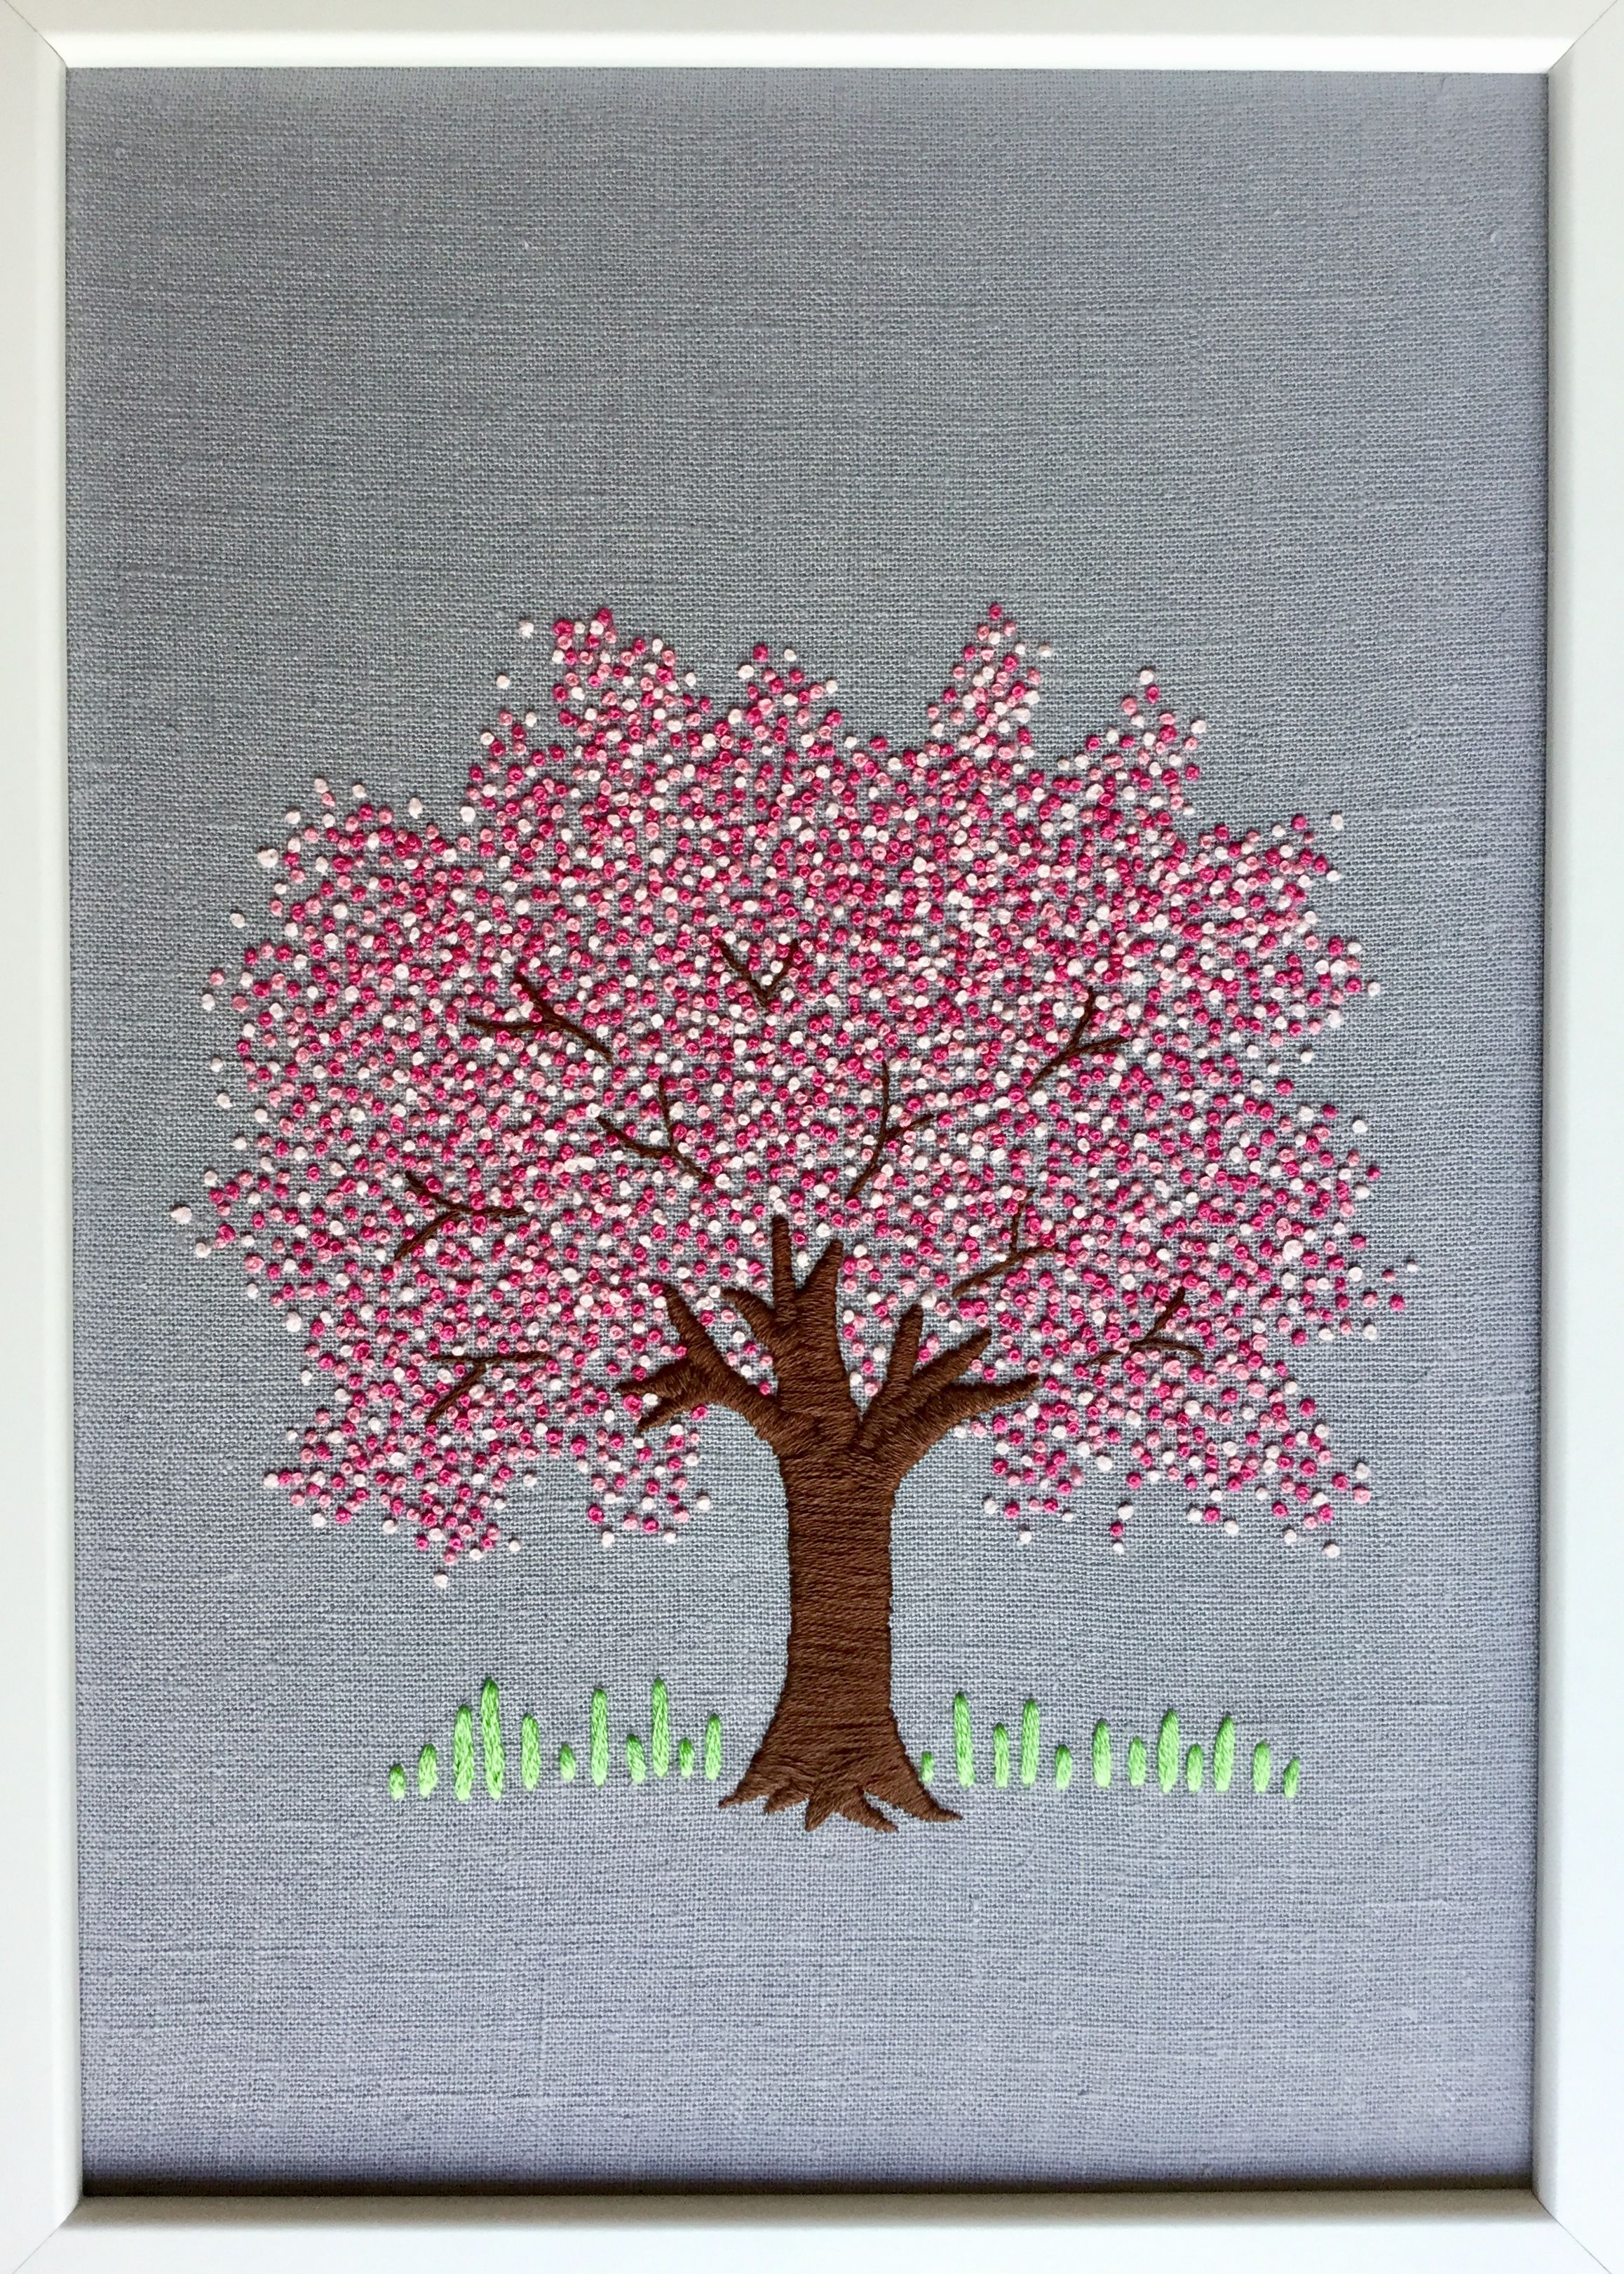 My Project Embroidered Cherry Blossom Tree Sakura Tree French Knots In Stranded Cotton On Linen Background Inspired By Some Kasnak Sanati Kanavice Nakis